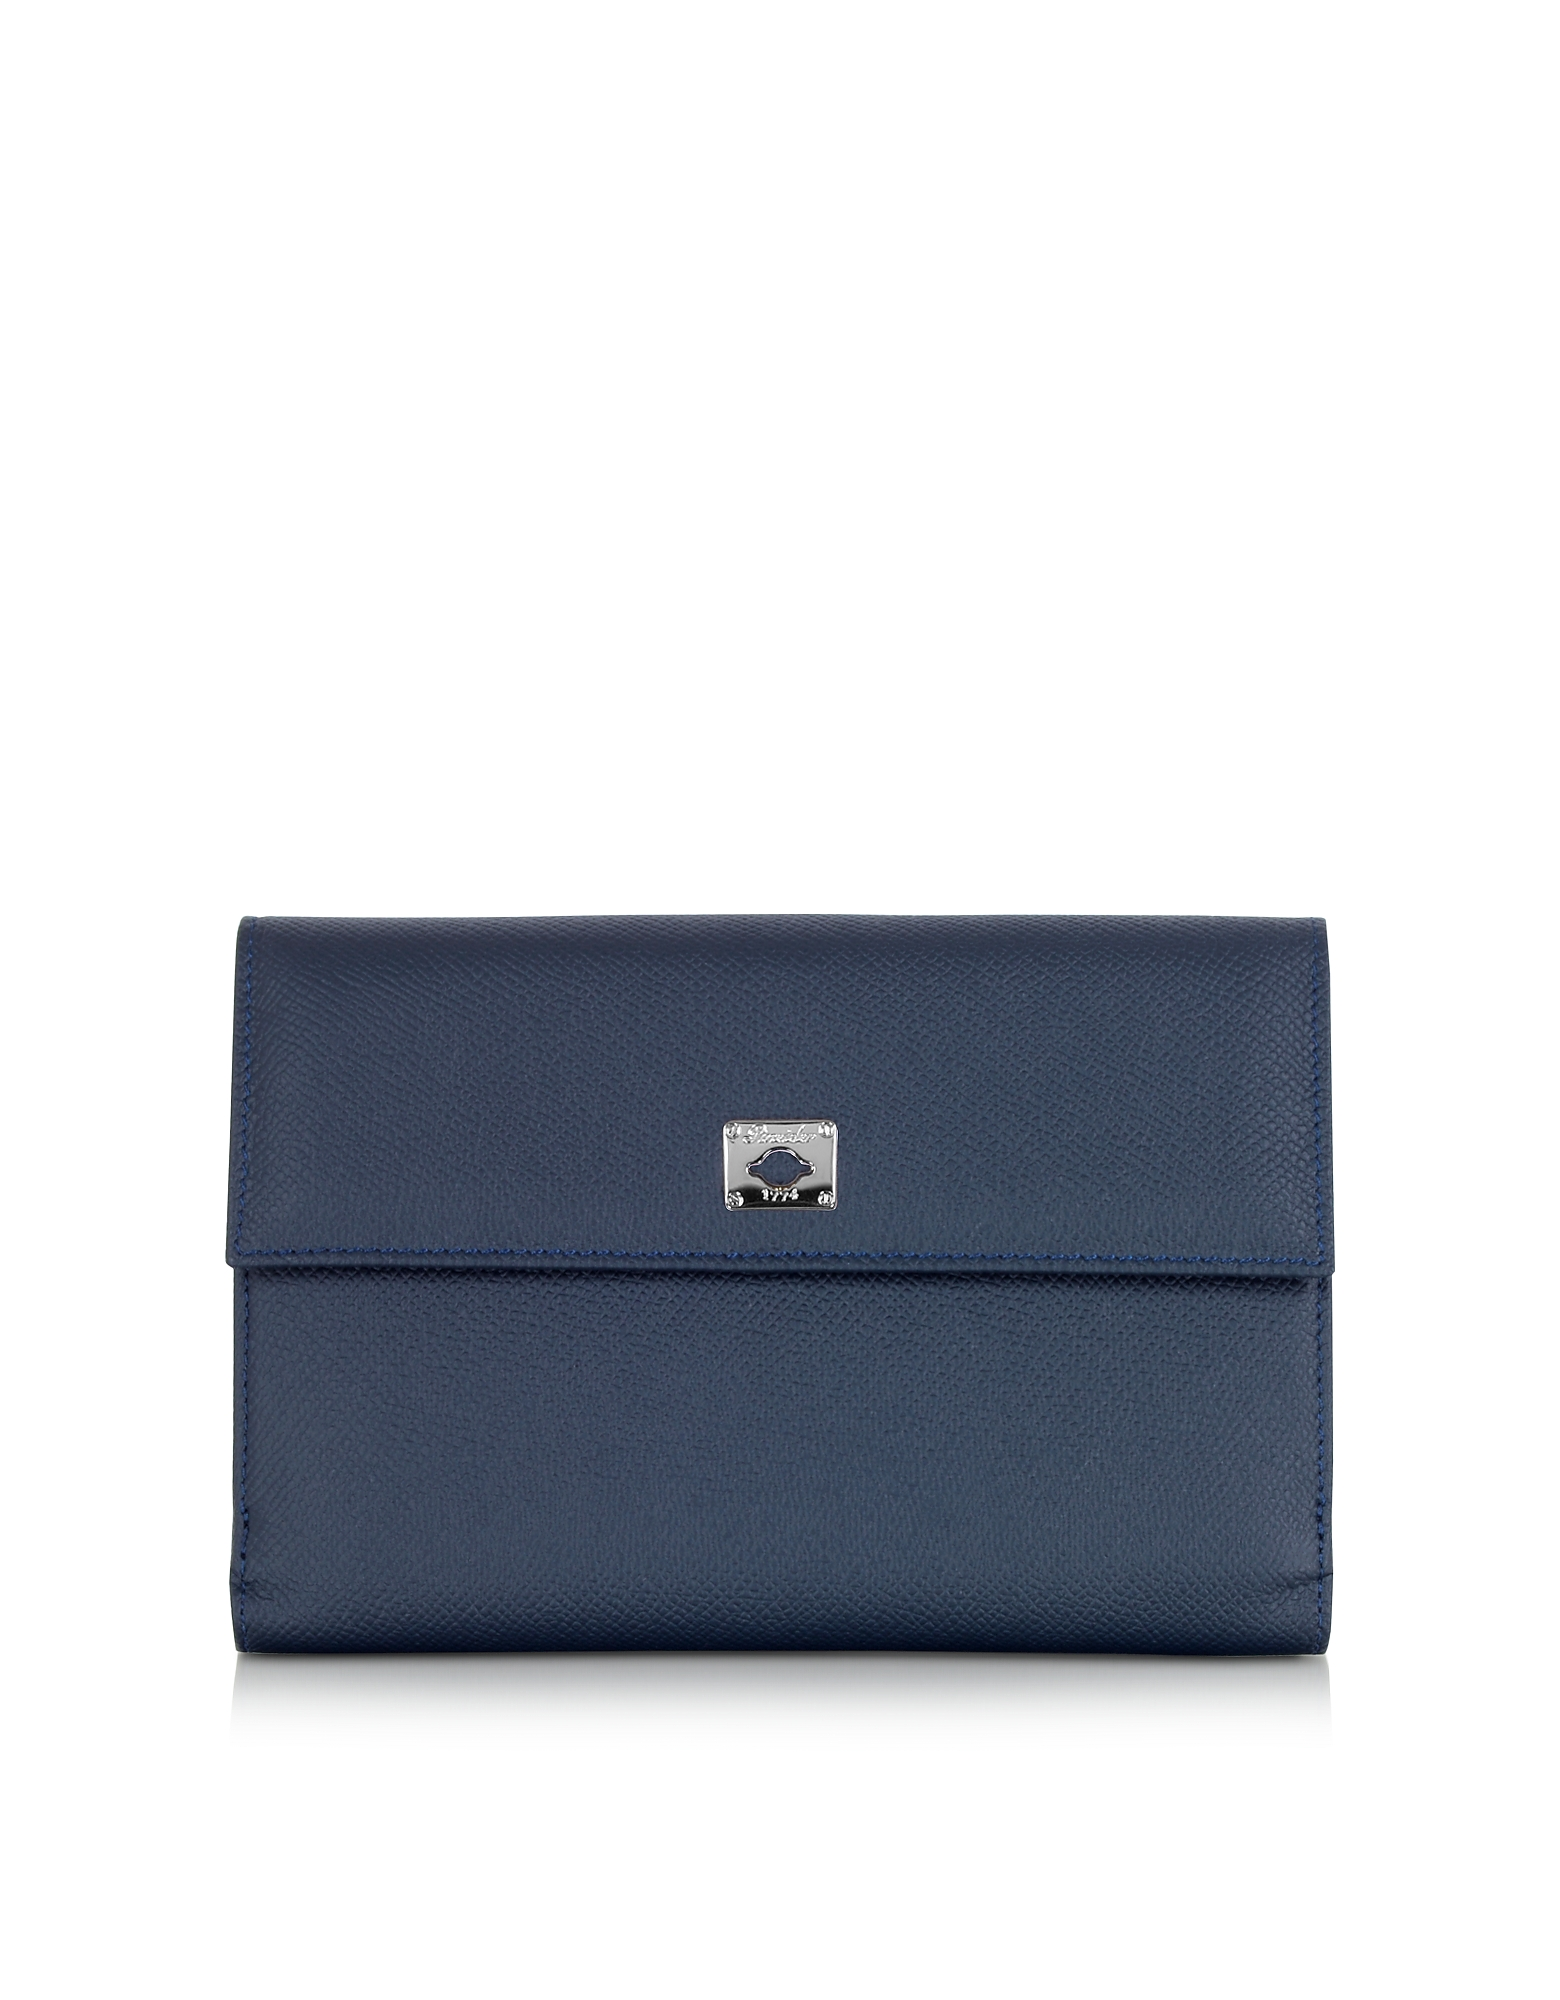 Pineider Handbags, City Chic Blue Leather French Purse Wallet